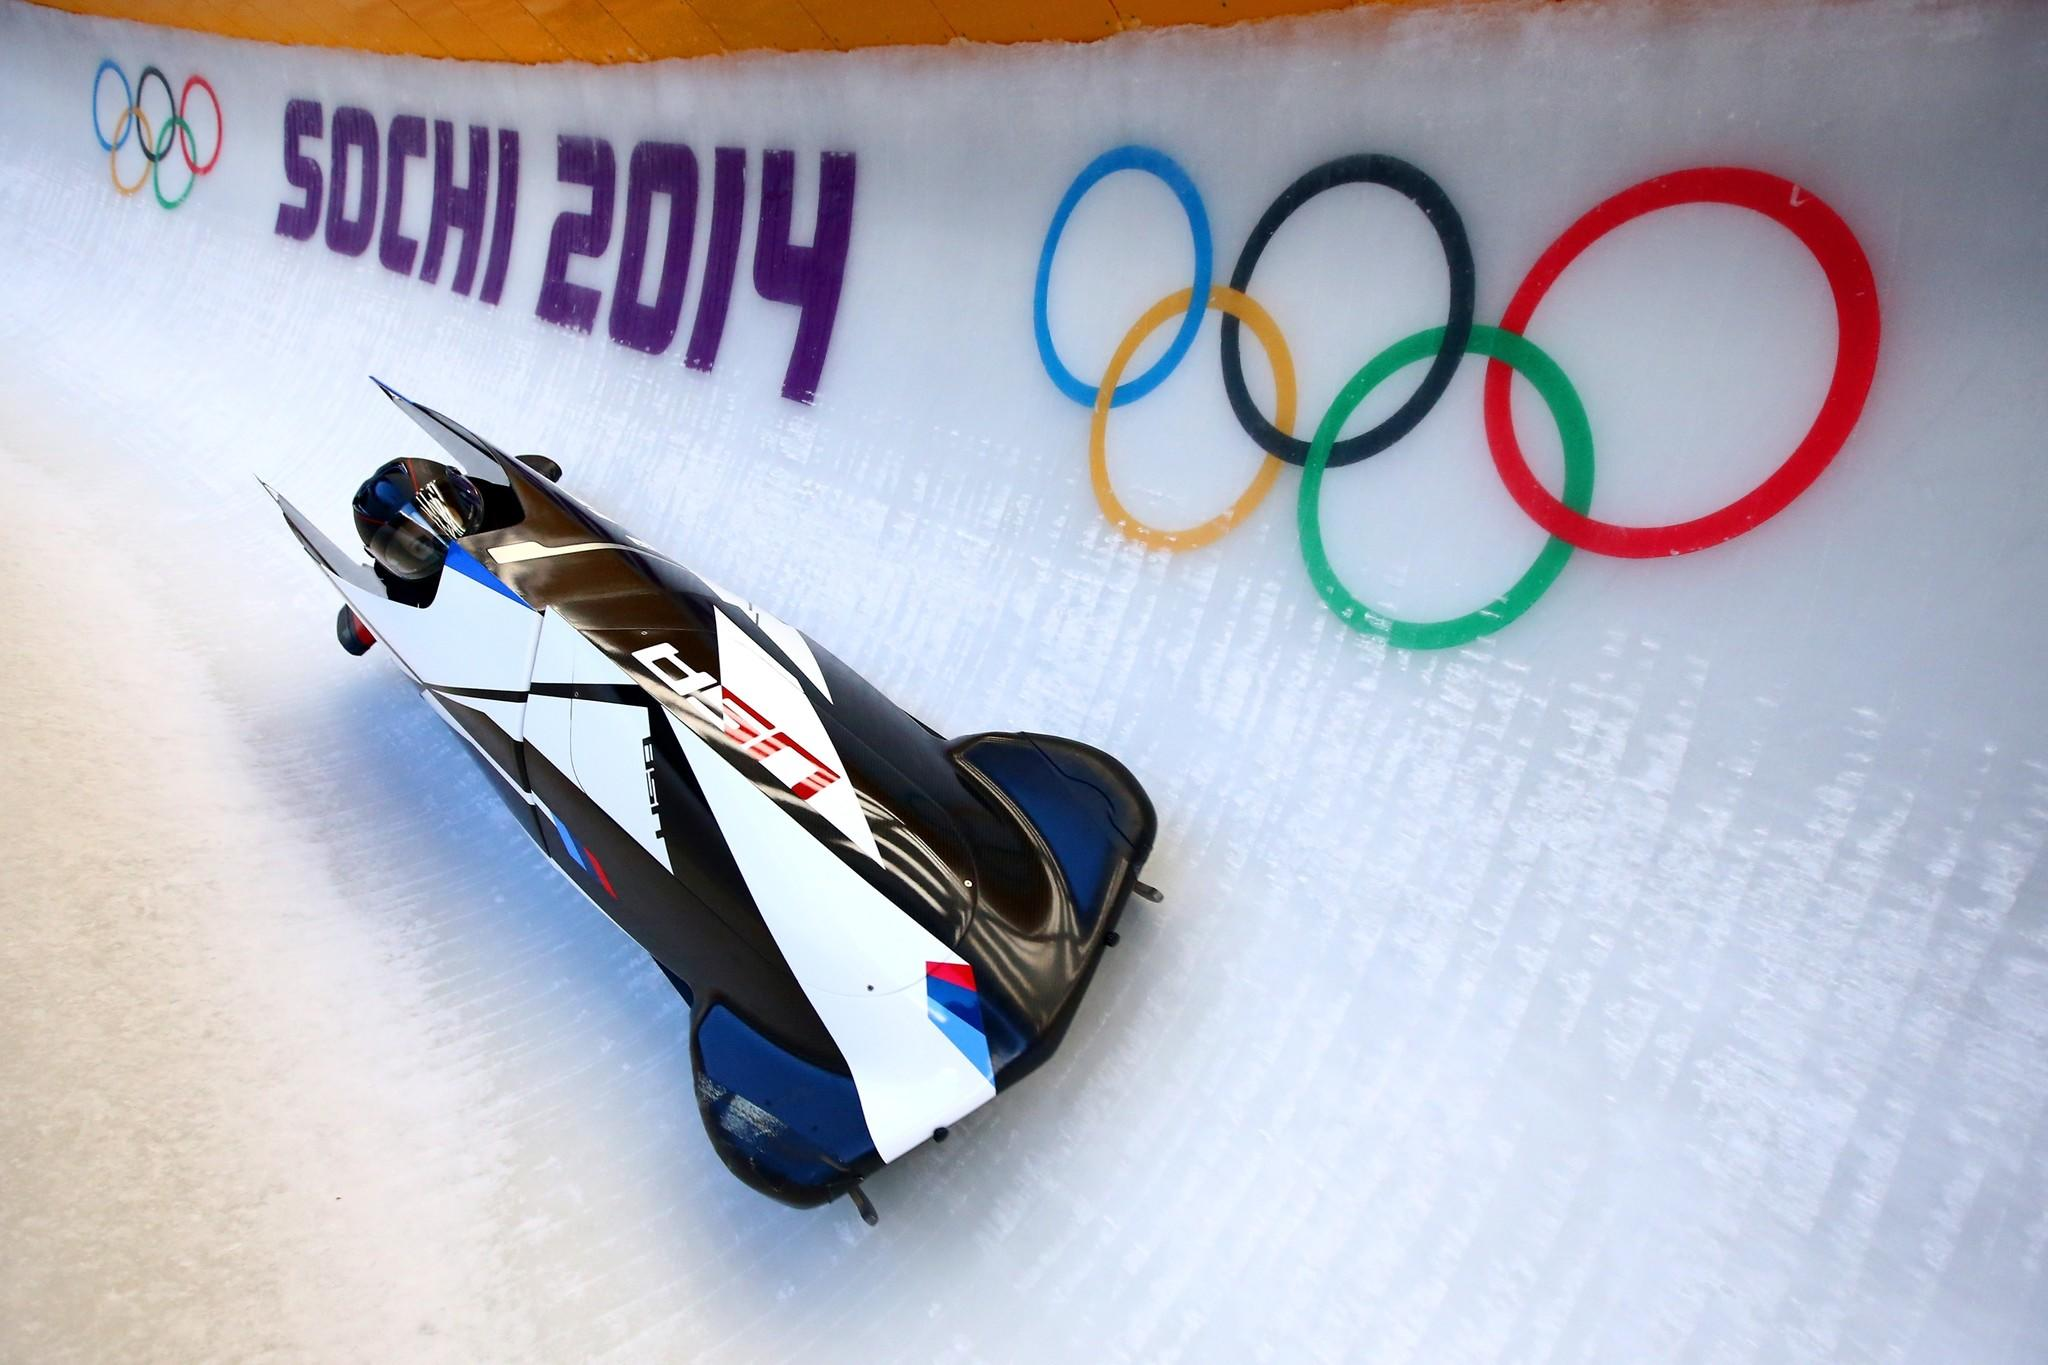 Aja Evans and Elana Meyers practice a bobsleigh run ahead of the Sochi 2014 Winter Olympics. (Al Bello/Getty Photo)